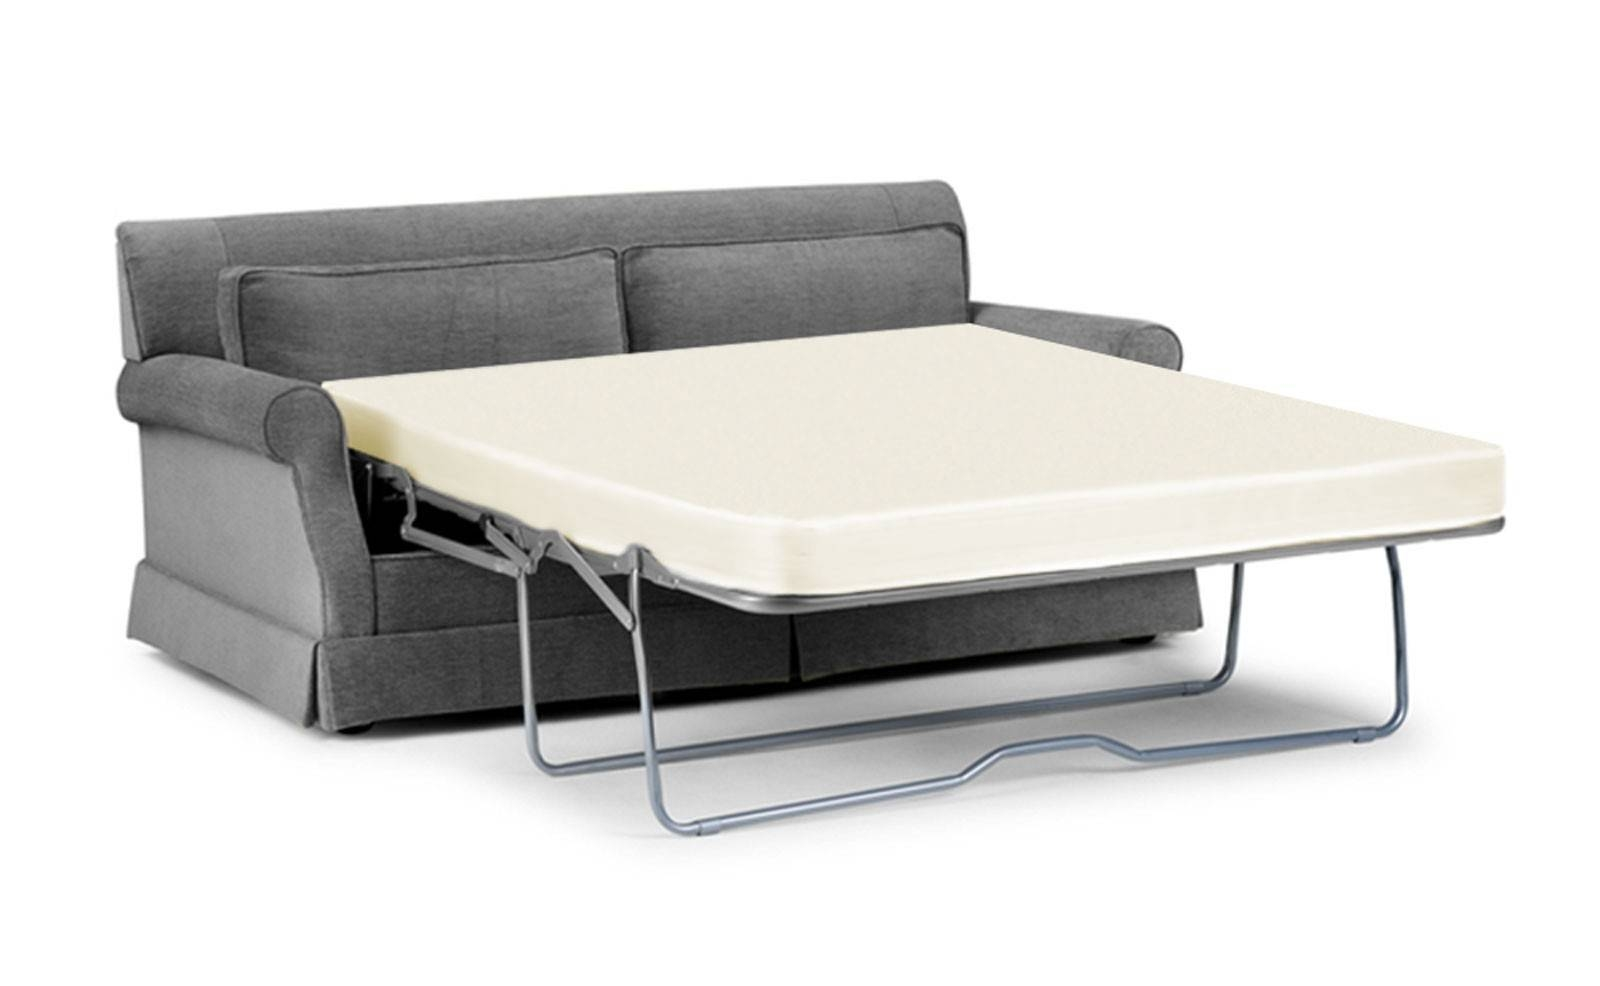 Sofa Bed With Memory Foam Mattress In Sofas Mattress (View 9 of 15)